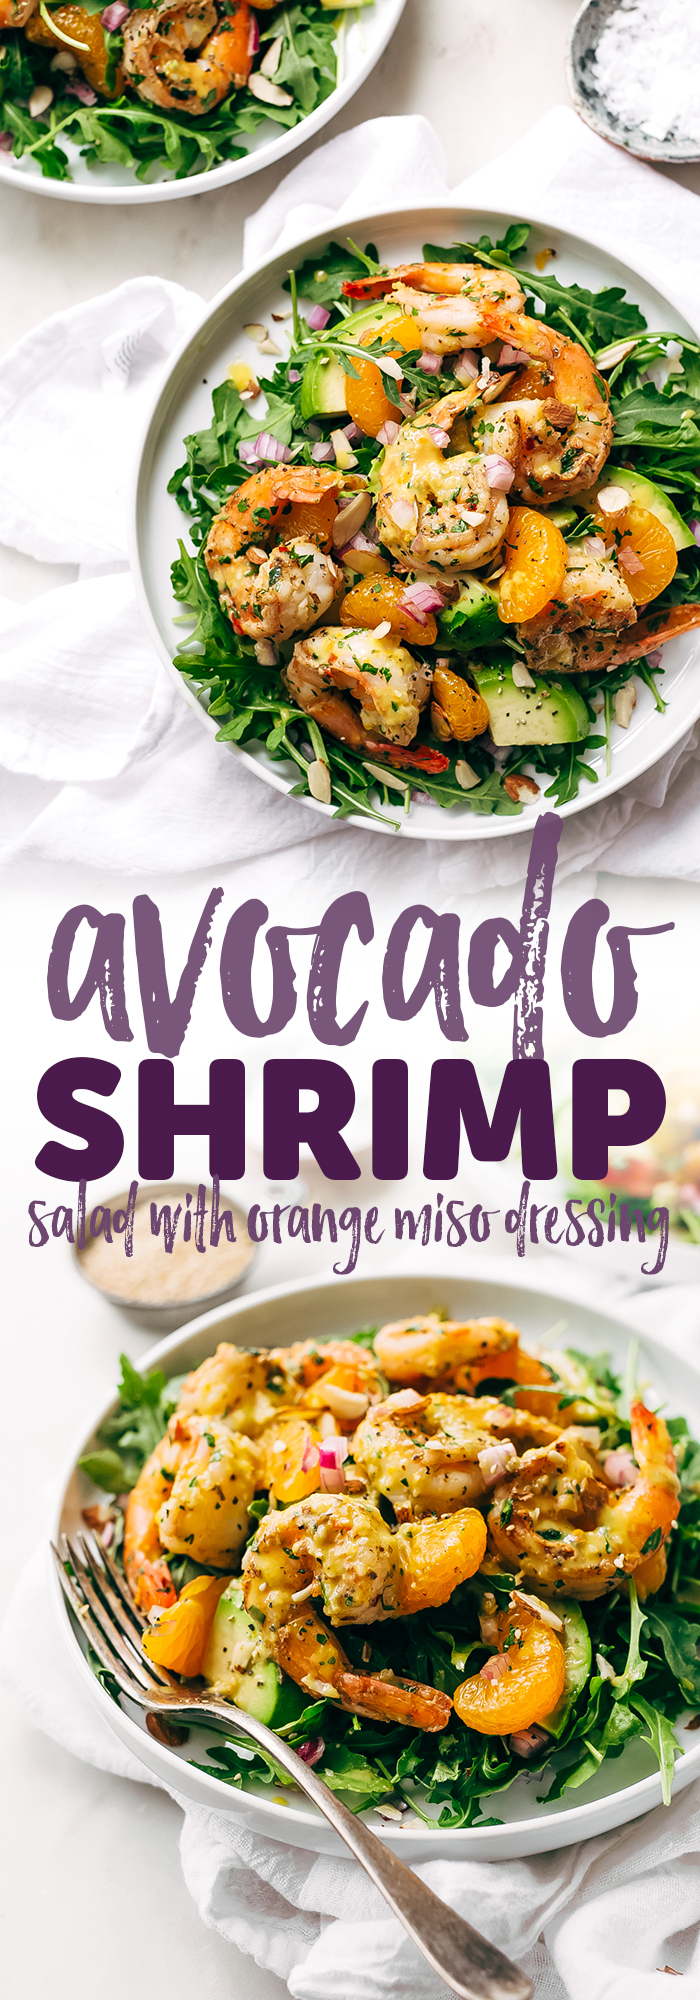 Avocado Shrimp Salad with Citrus Miso Dressing - learn how to make a quick and easy shrimp salad loaded with tons avocados, mandarin oranges, and sliced almonds! #shrimpsalad #salad #lowcarb #avocadoshrimpsalad | Littlespicejar.com